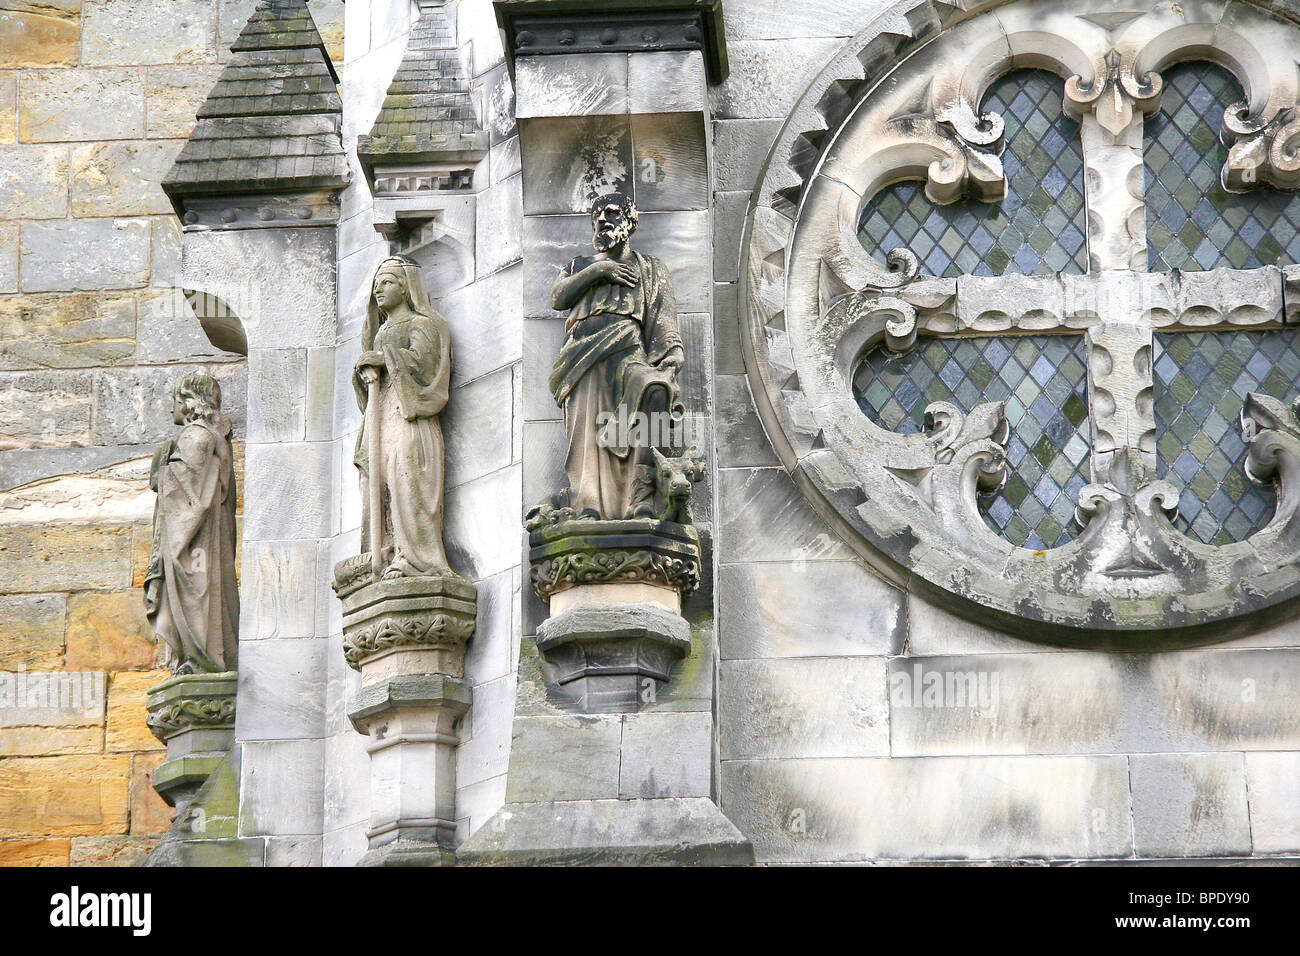 Roslyn, Scotland. Roslyn Chapel, made famous by the book and movie Da Vinci Code is now a major tourist destination. - Stock Image